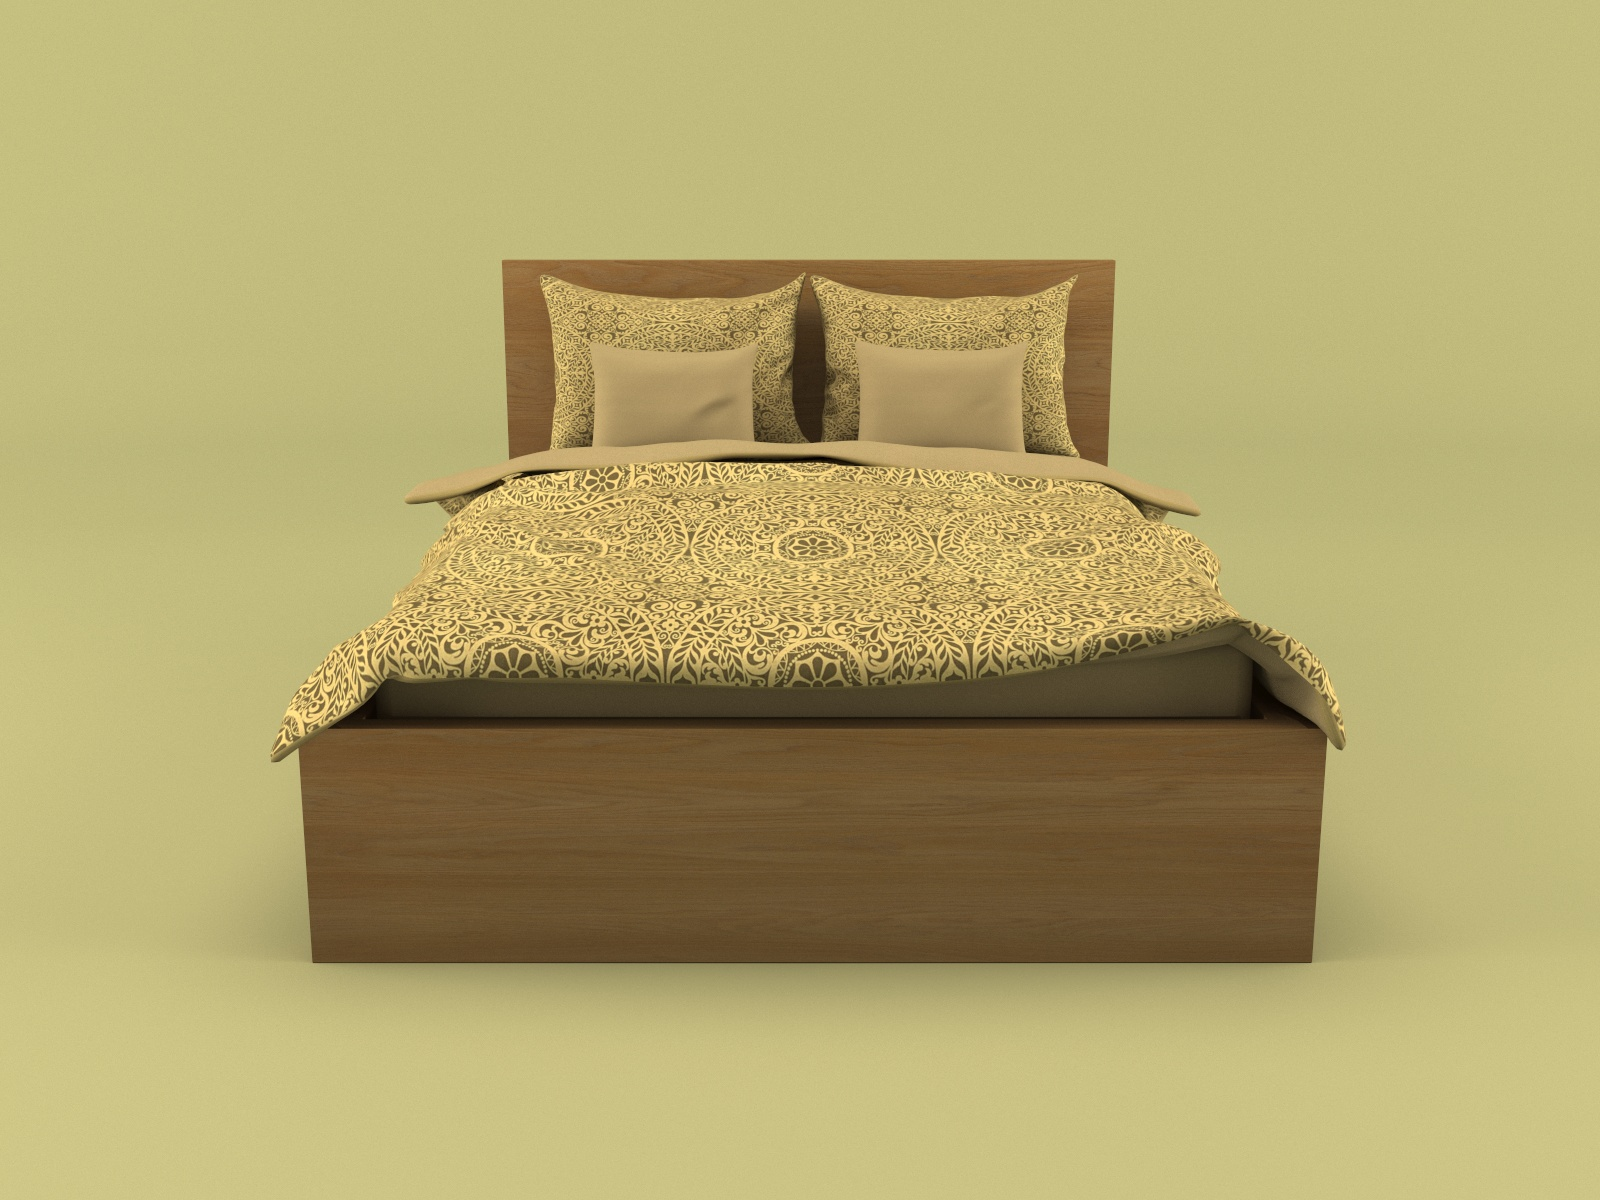 Ikea Malm Bed 3d Model Low Poly